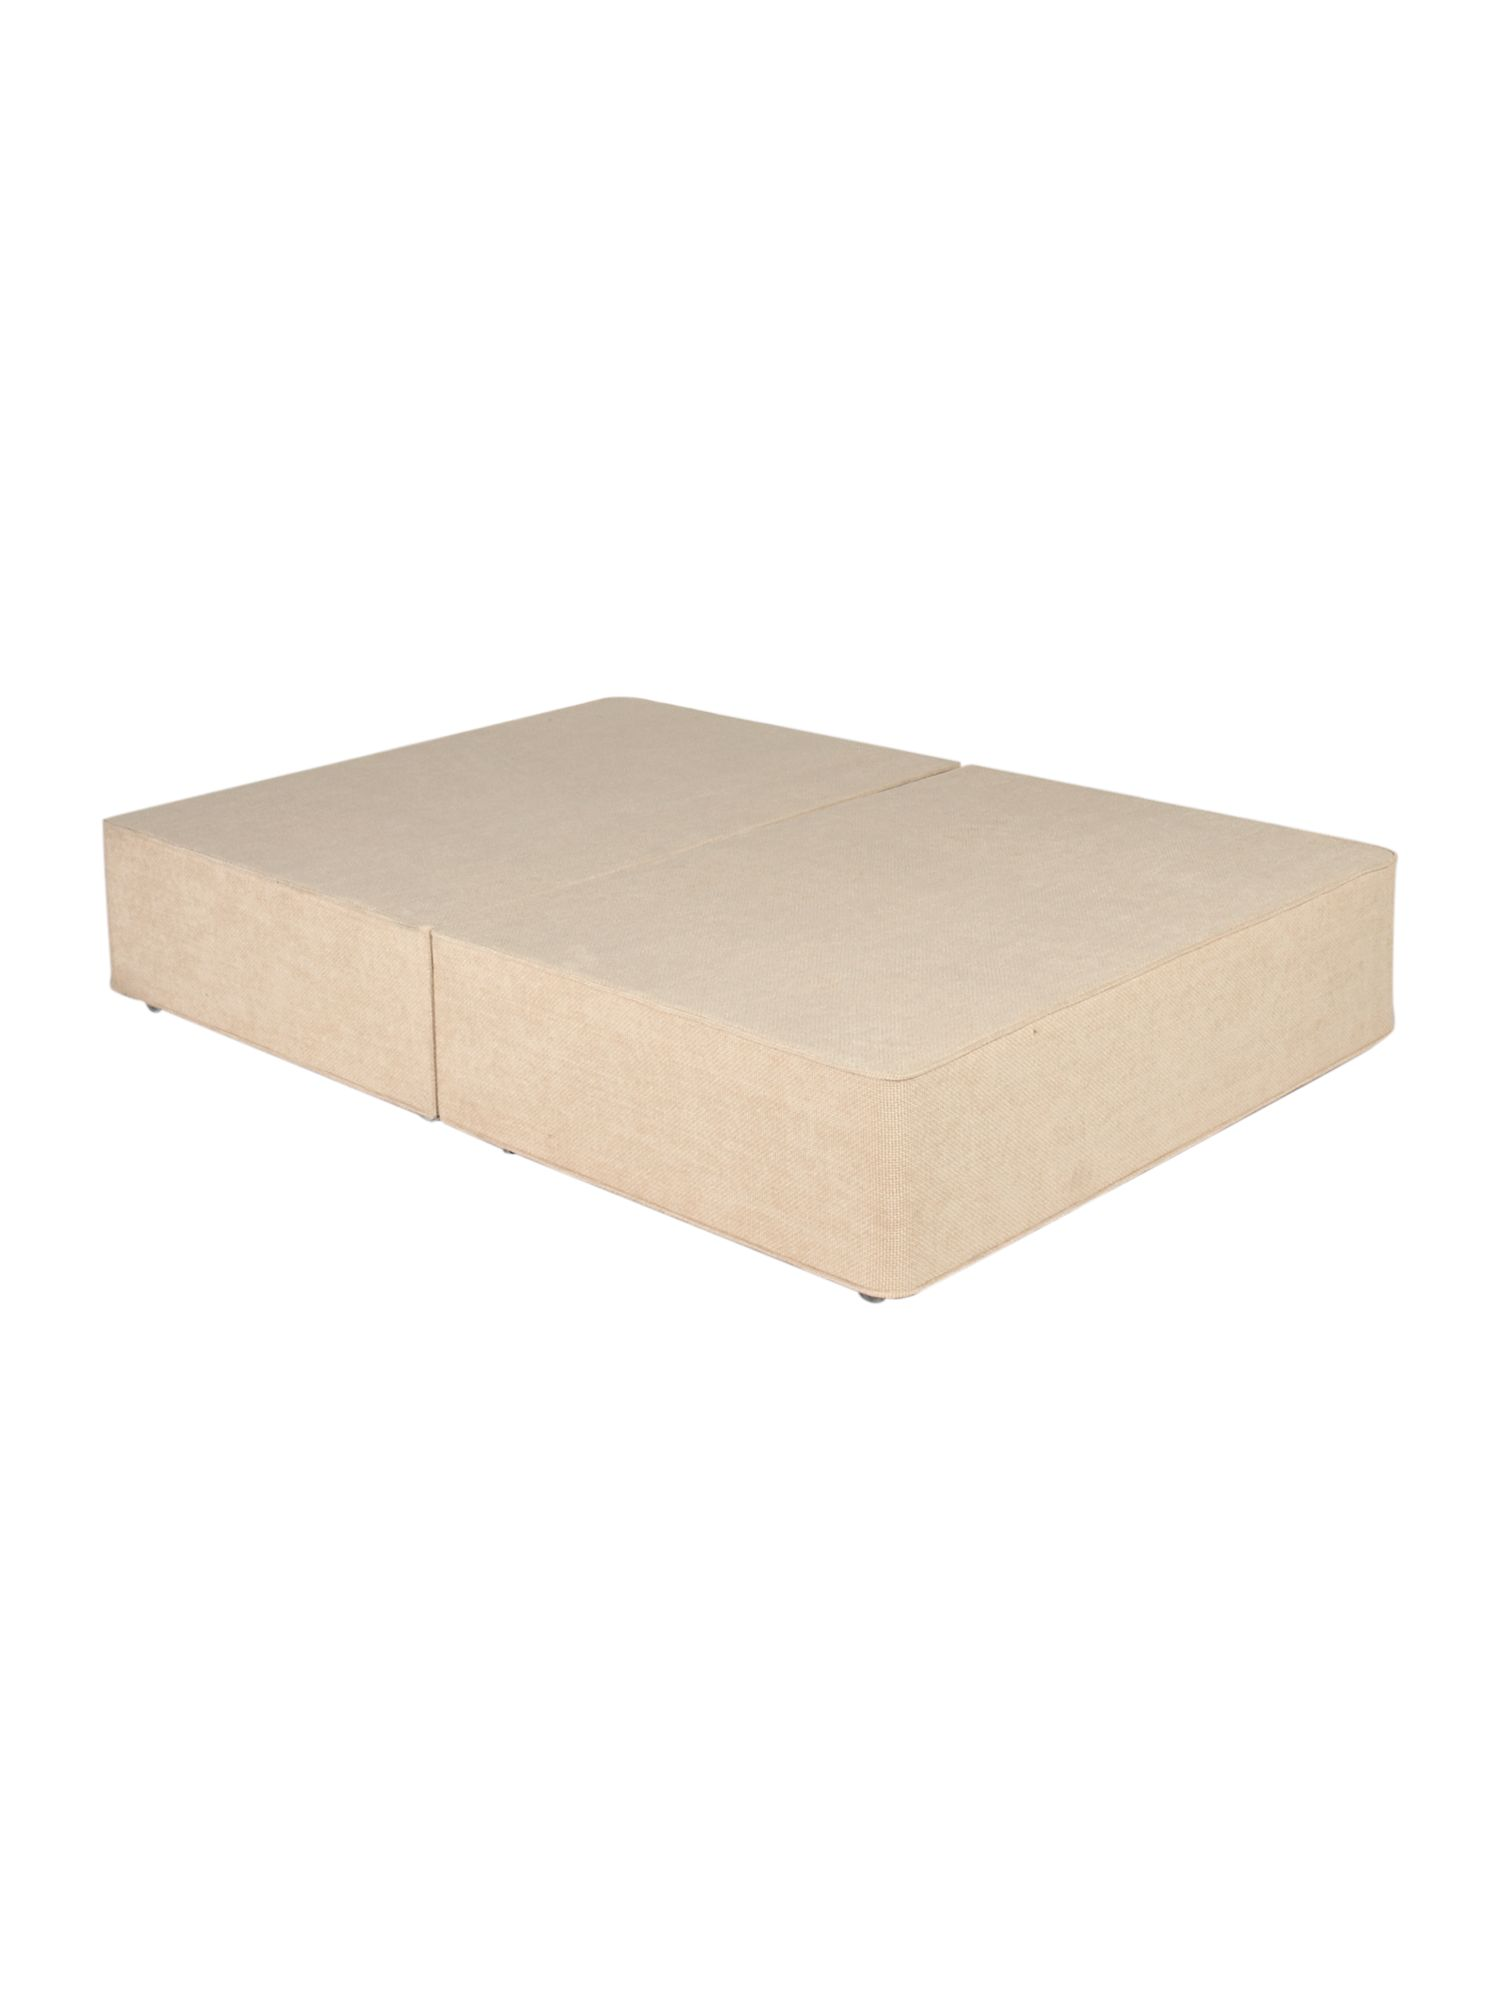 Cream double platform top divan base